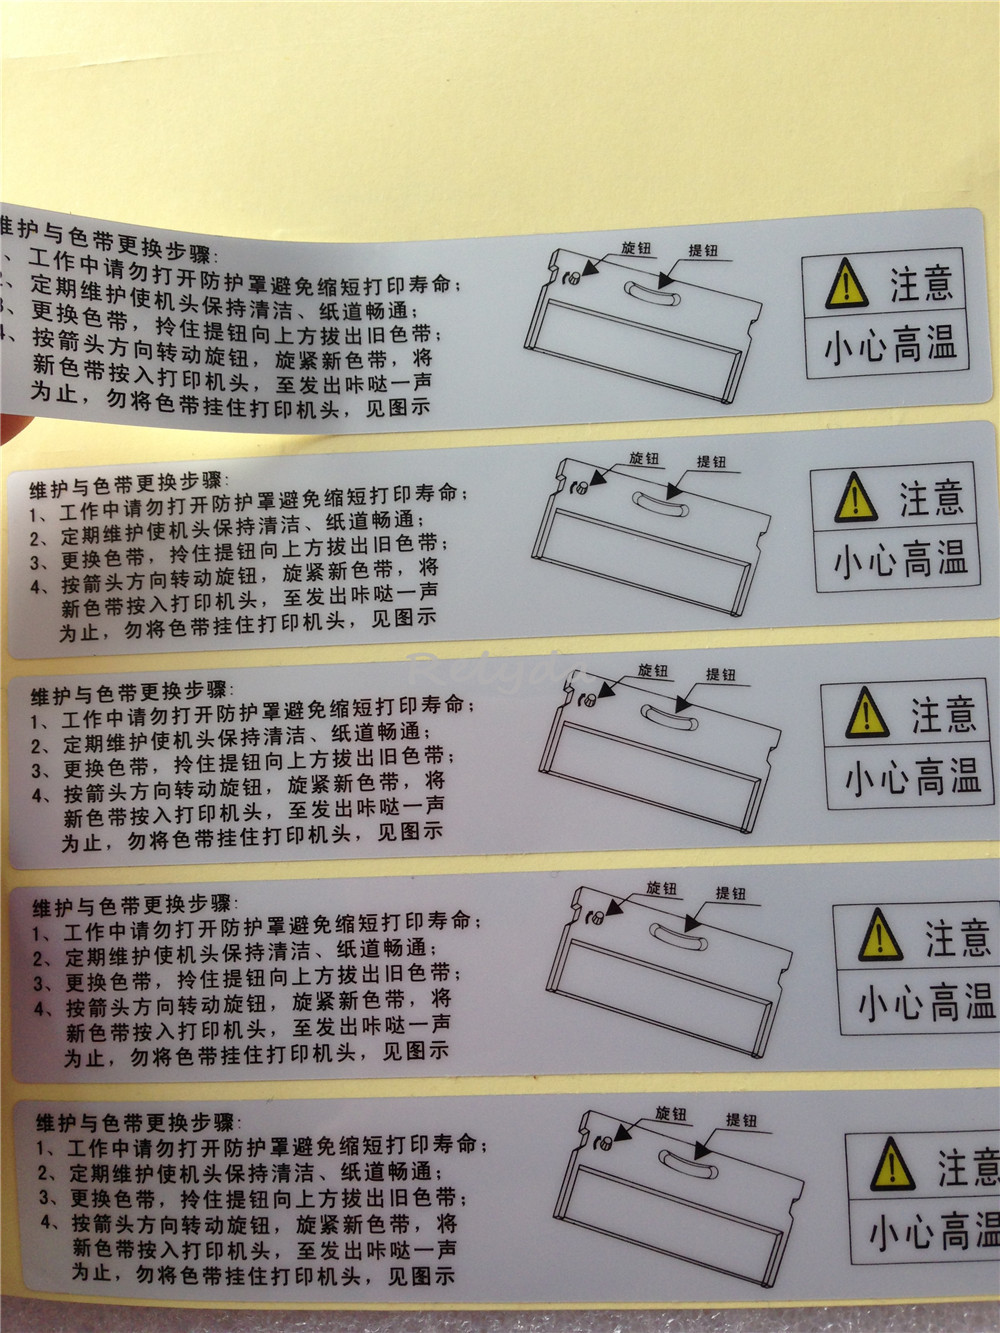 2000pcs Free shipping Computer motherboard stickers Notebook/Mobile Phone/Battery Pack Power printer device labels PET silver(China (Mainland))